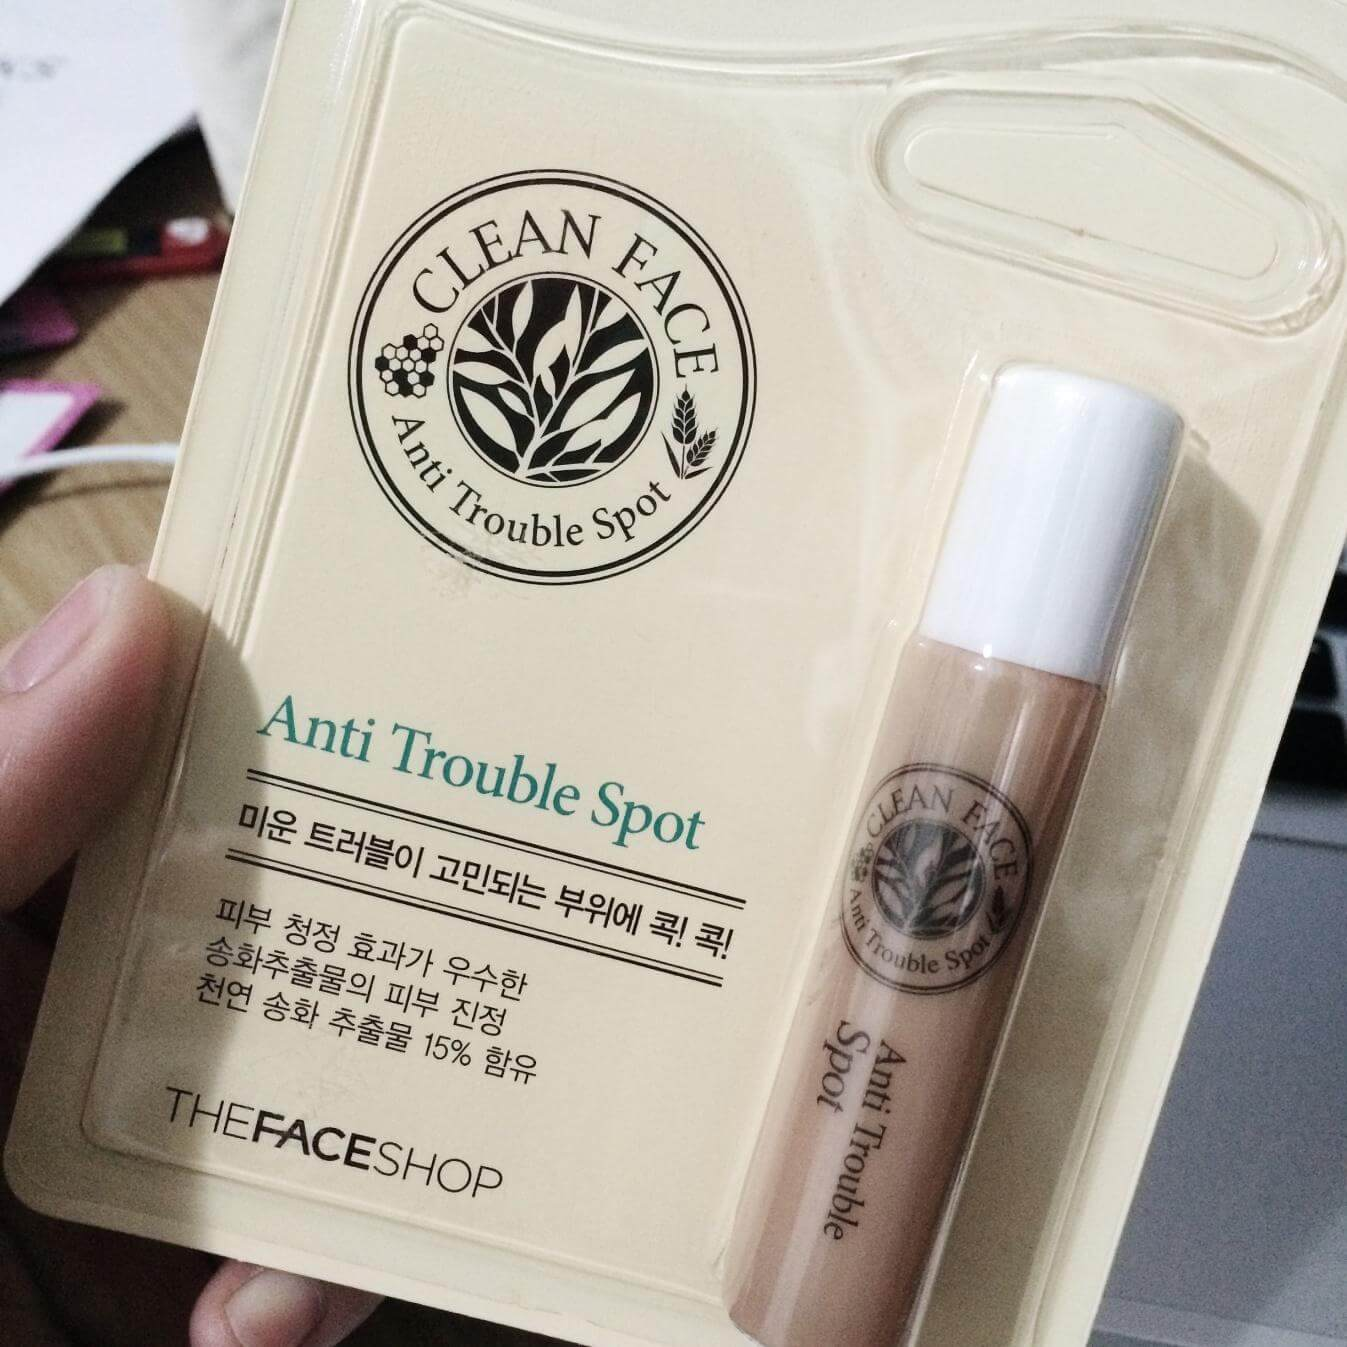 tinh-chat-tri-mun-thefaceshop-duong-da-clean-face-anti-trouble-spot-01